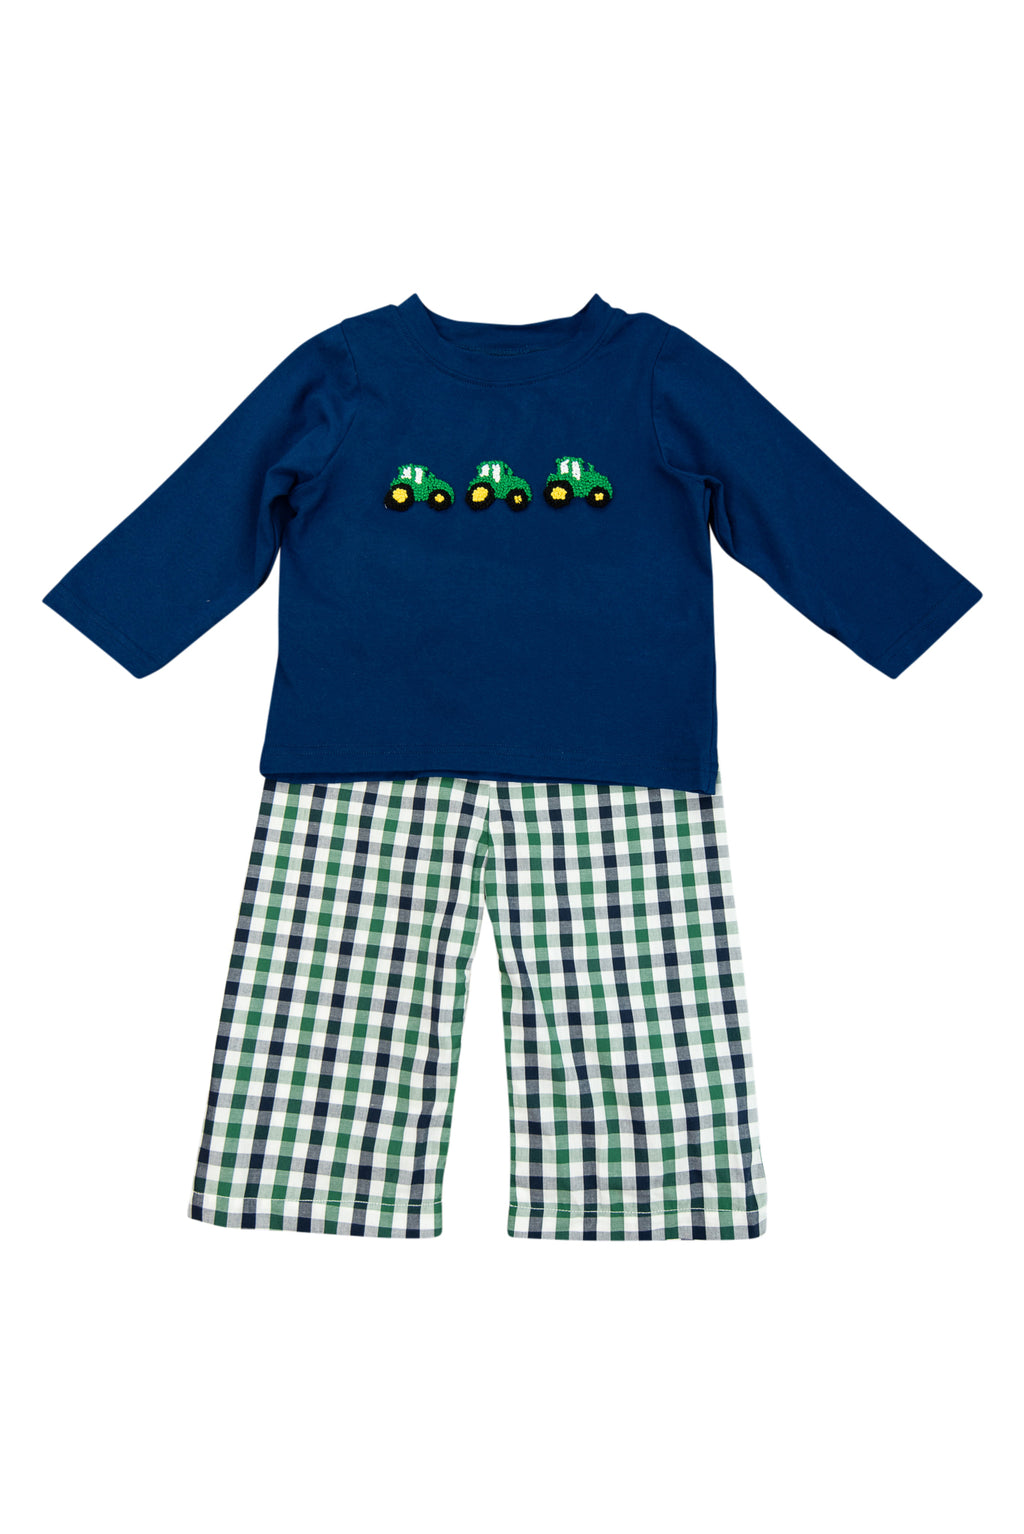 Boys French Knot Tractor Pant Set